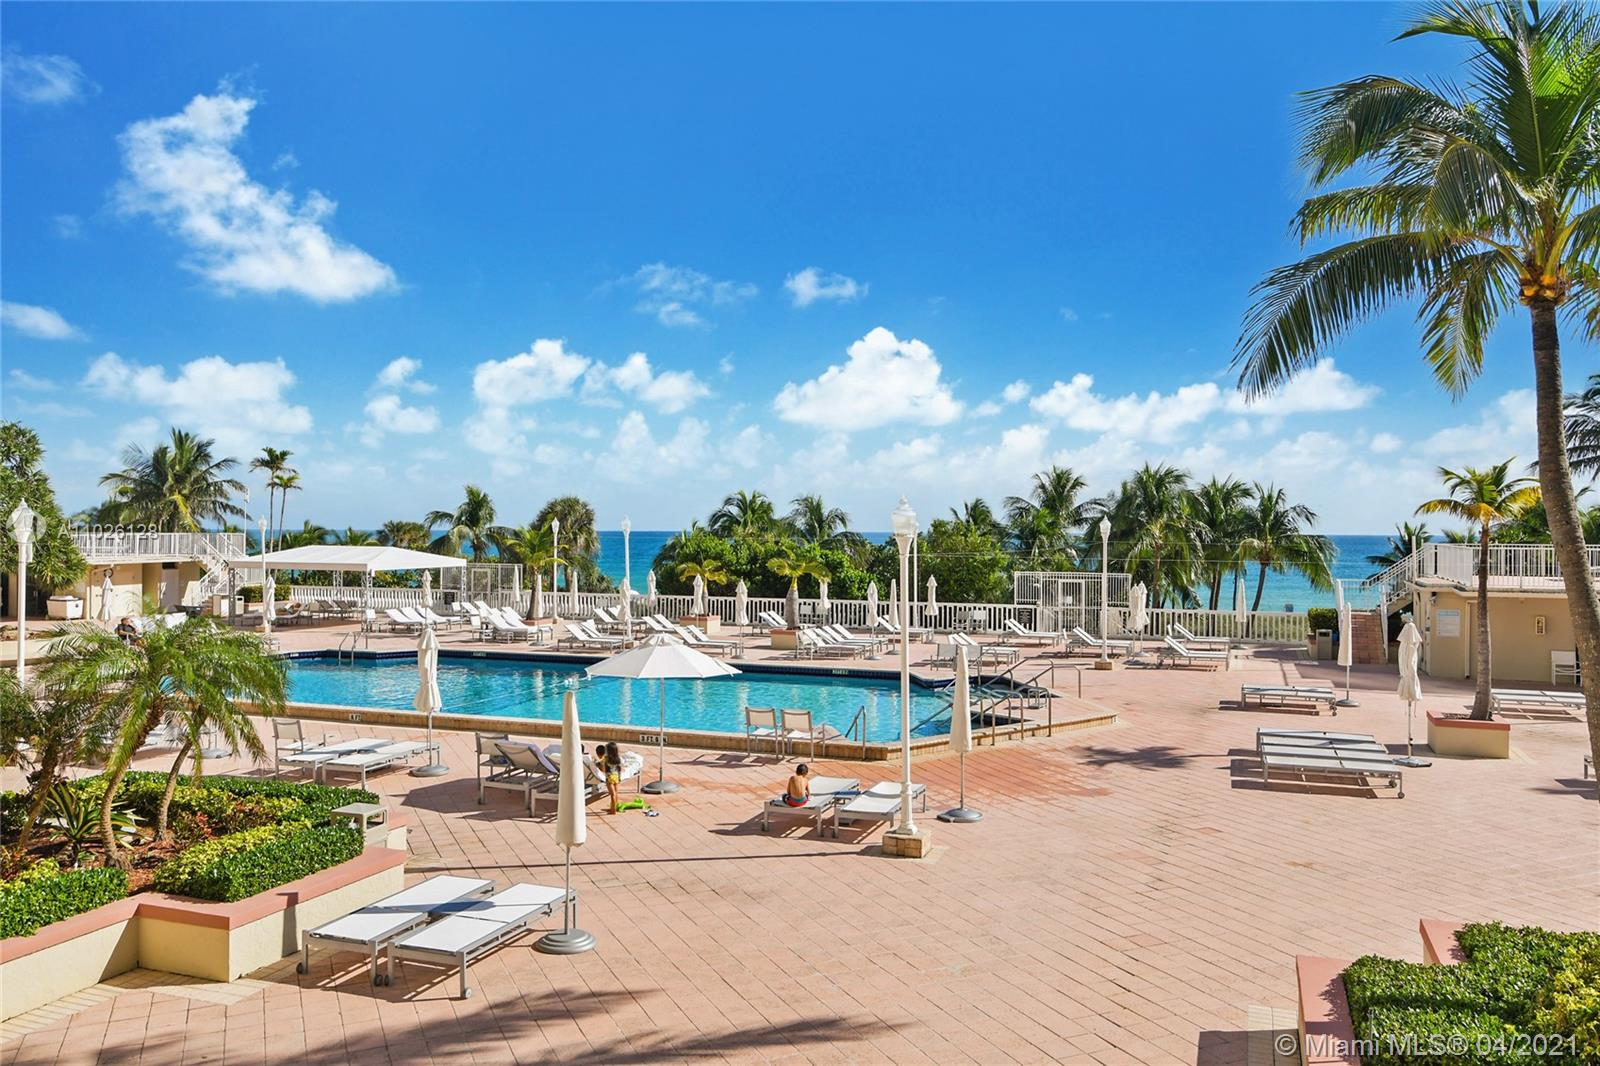 Photo of 9801 Collins Ave #20V, Bal Harbour, Florida, 33154 - Servise Beach, towels, umbrellas, chairs, tables and restaurant Balmoral for the residences